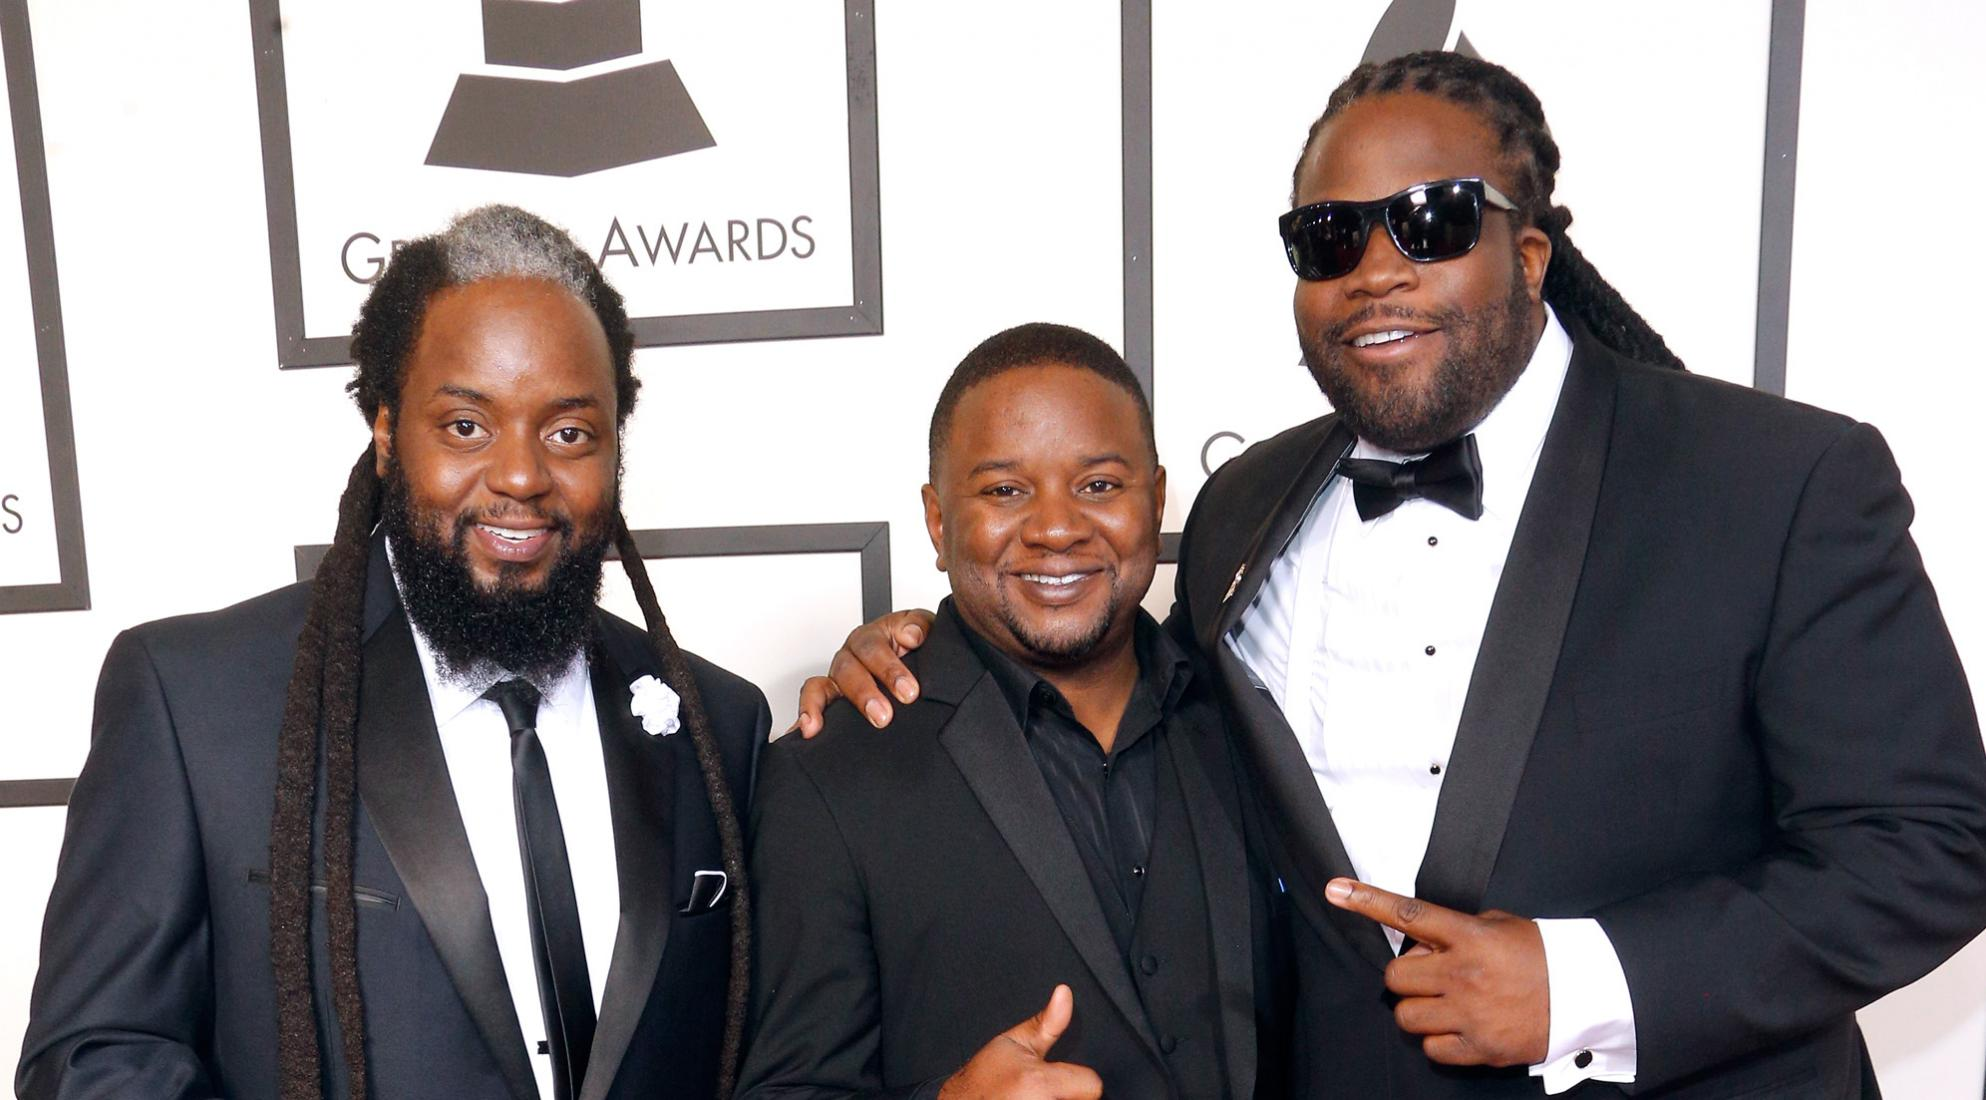 Morgan Heritage on the GRAMMYs red carpet